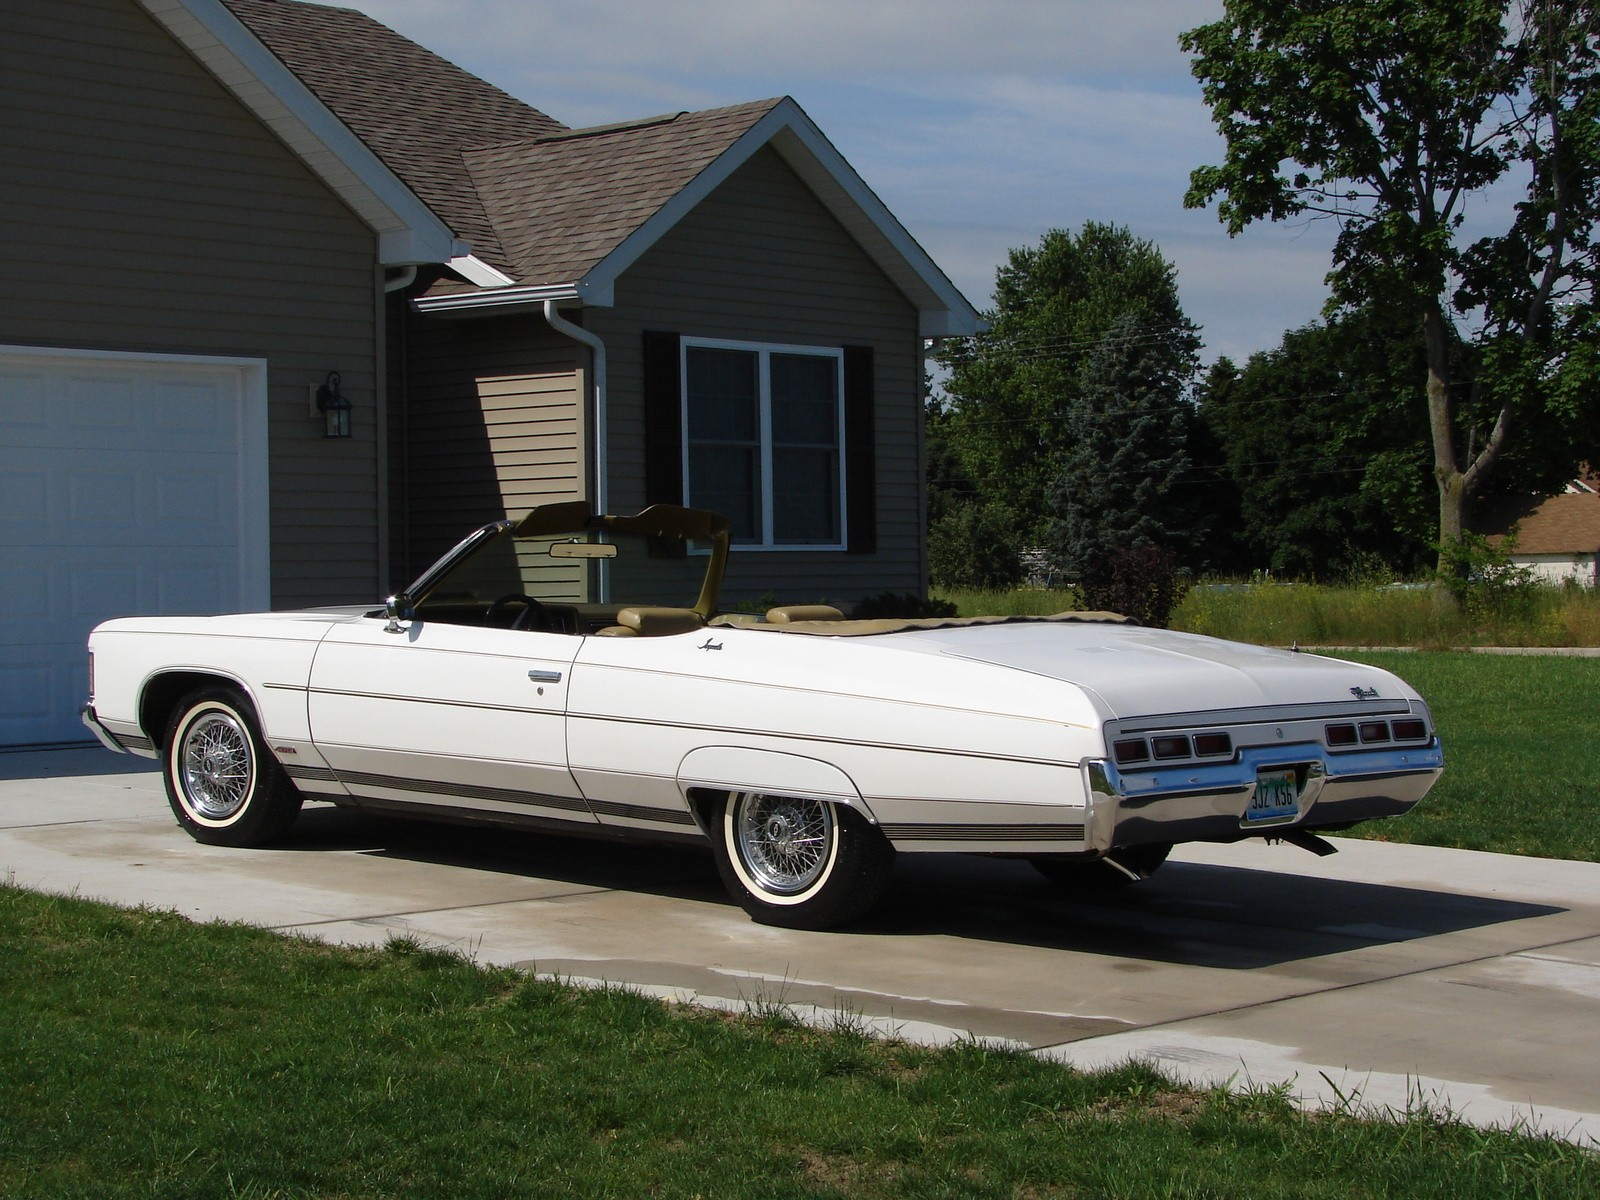 1971 Chevrolet Impala Convertible Top